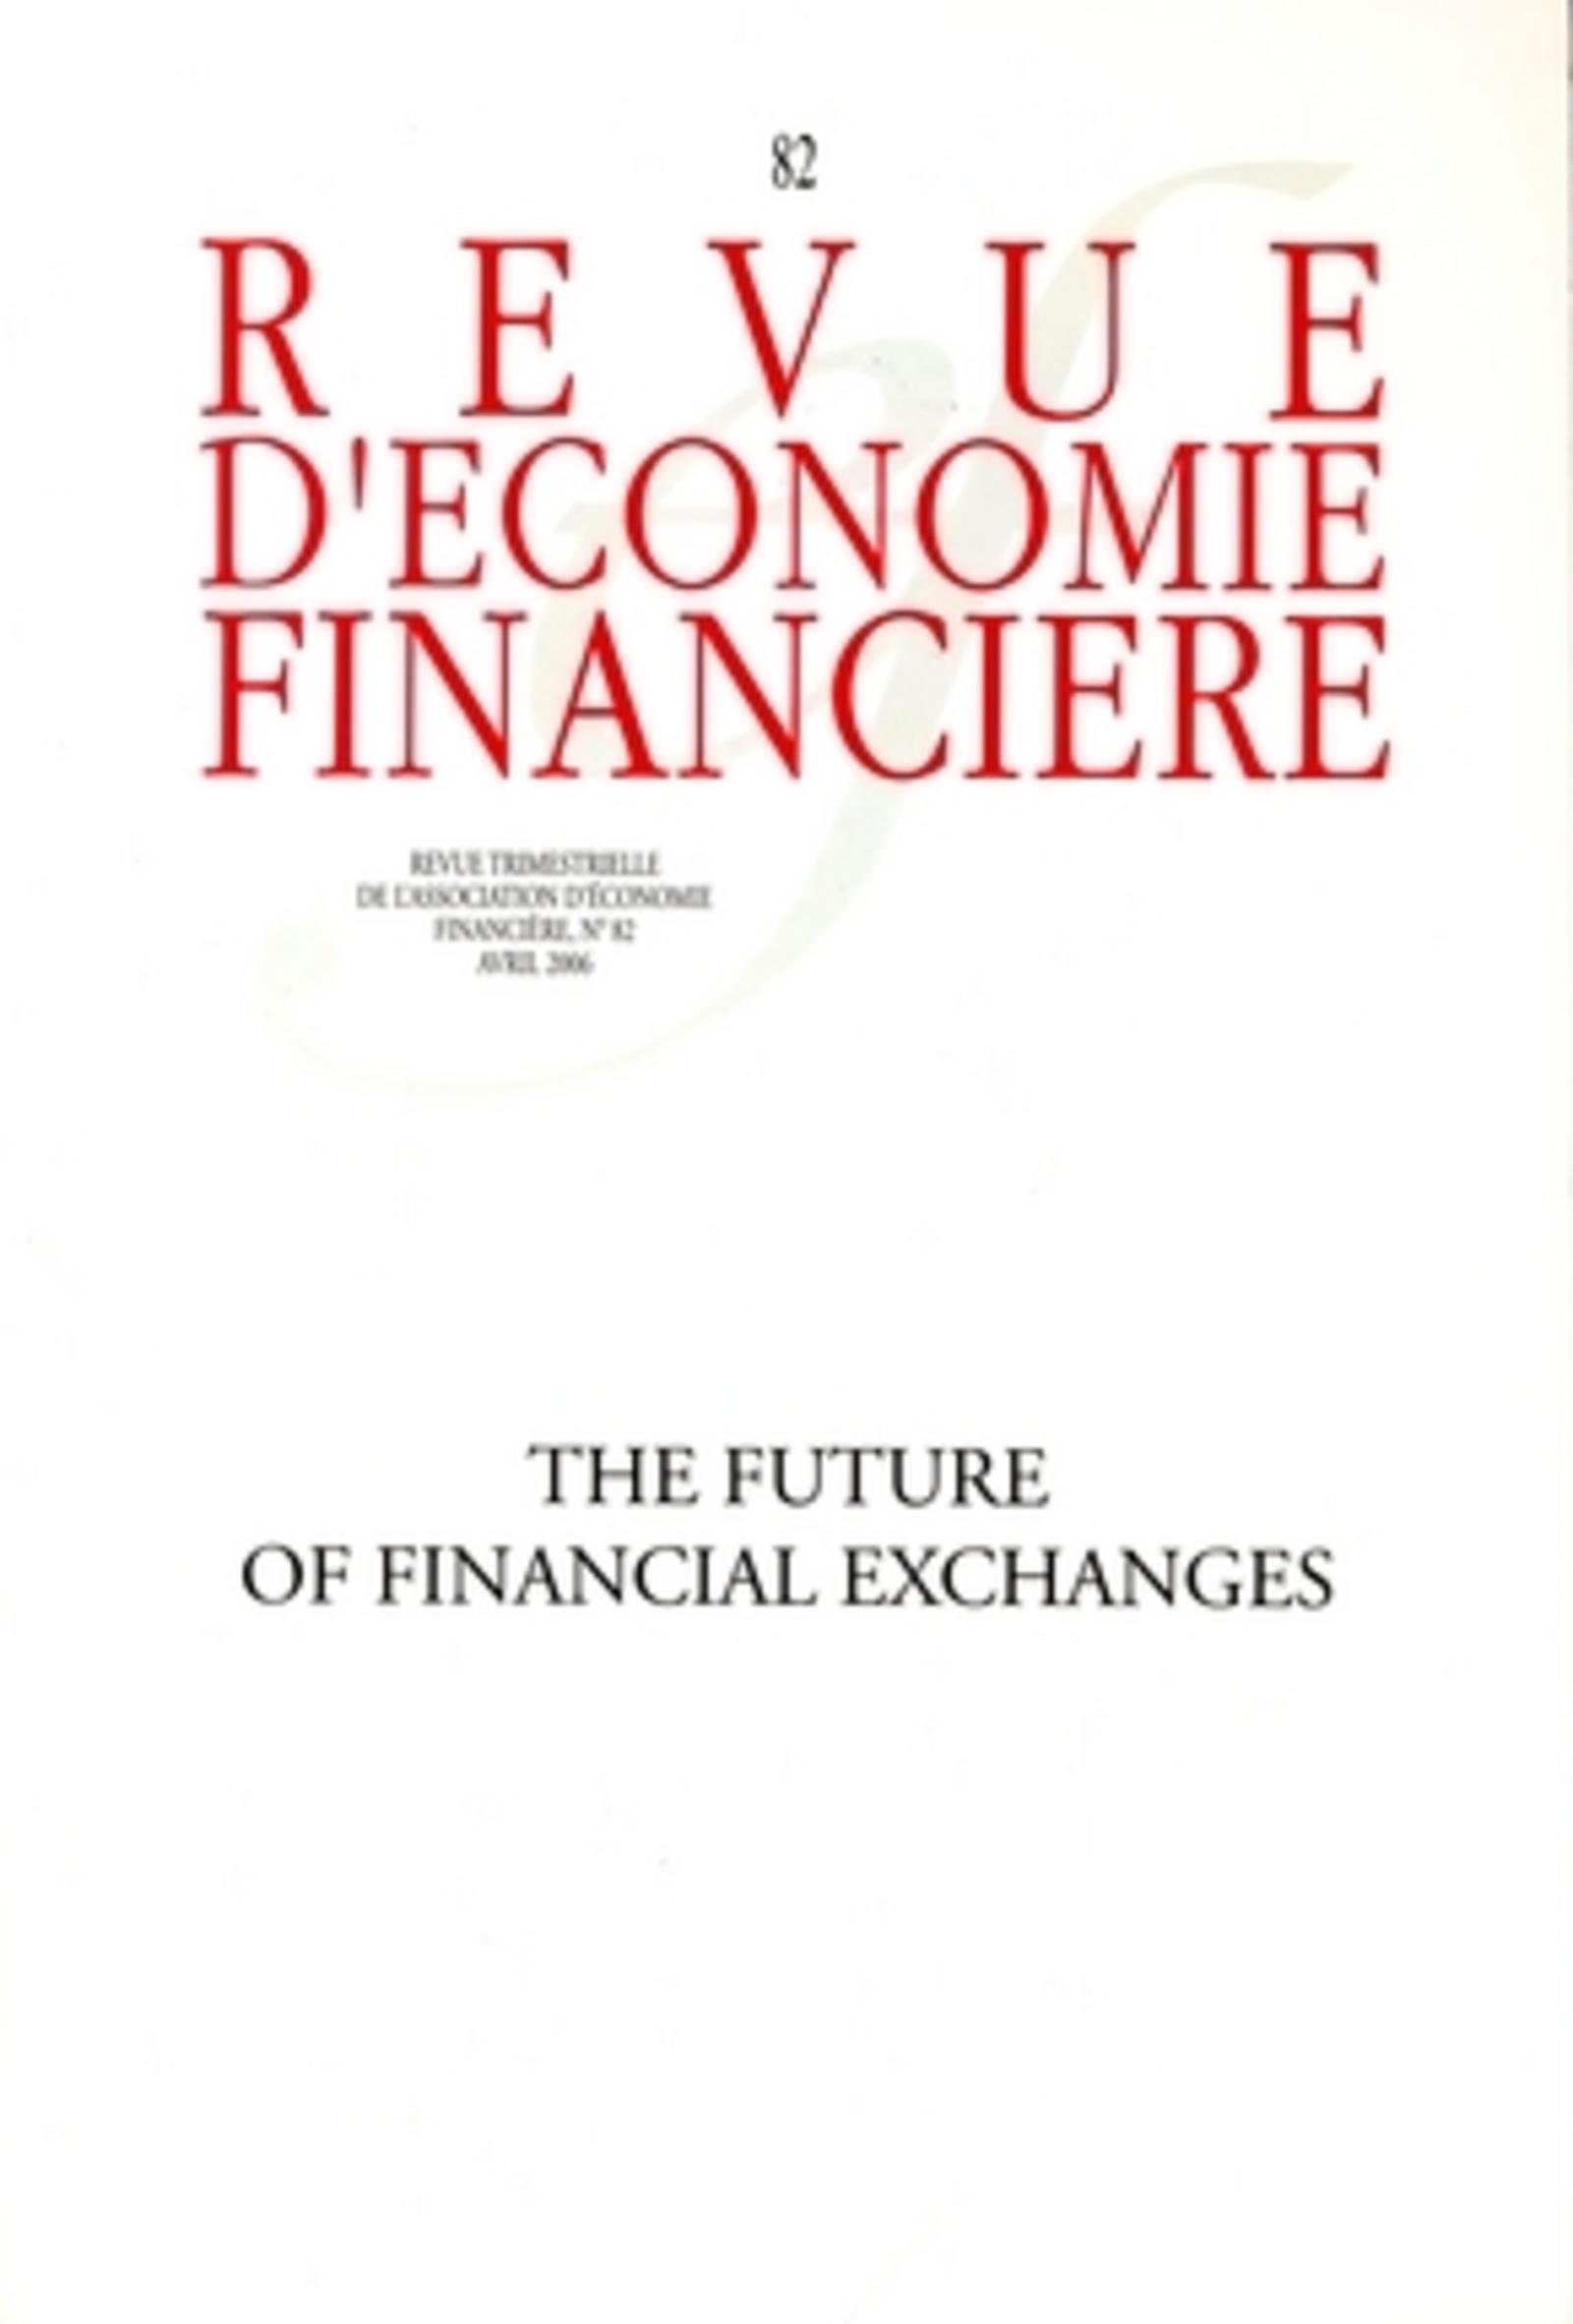 THE FUTURE OF FINANCIAL EXCHANGES NO 82 - AVRIL 2006